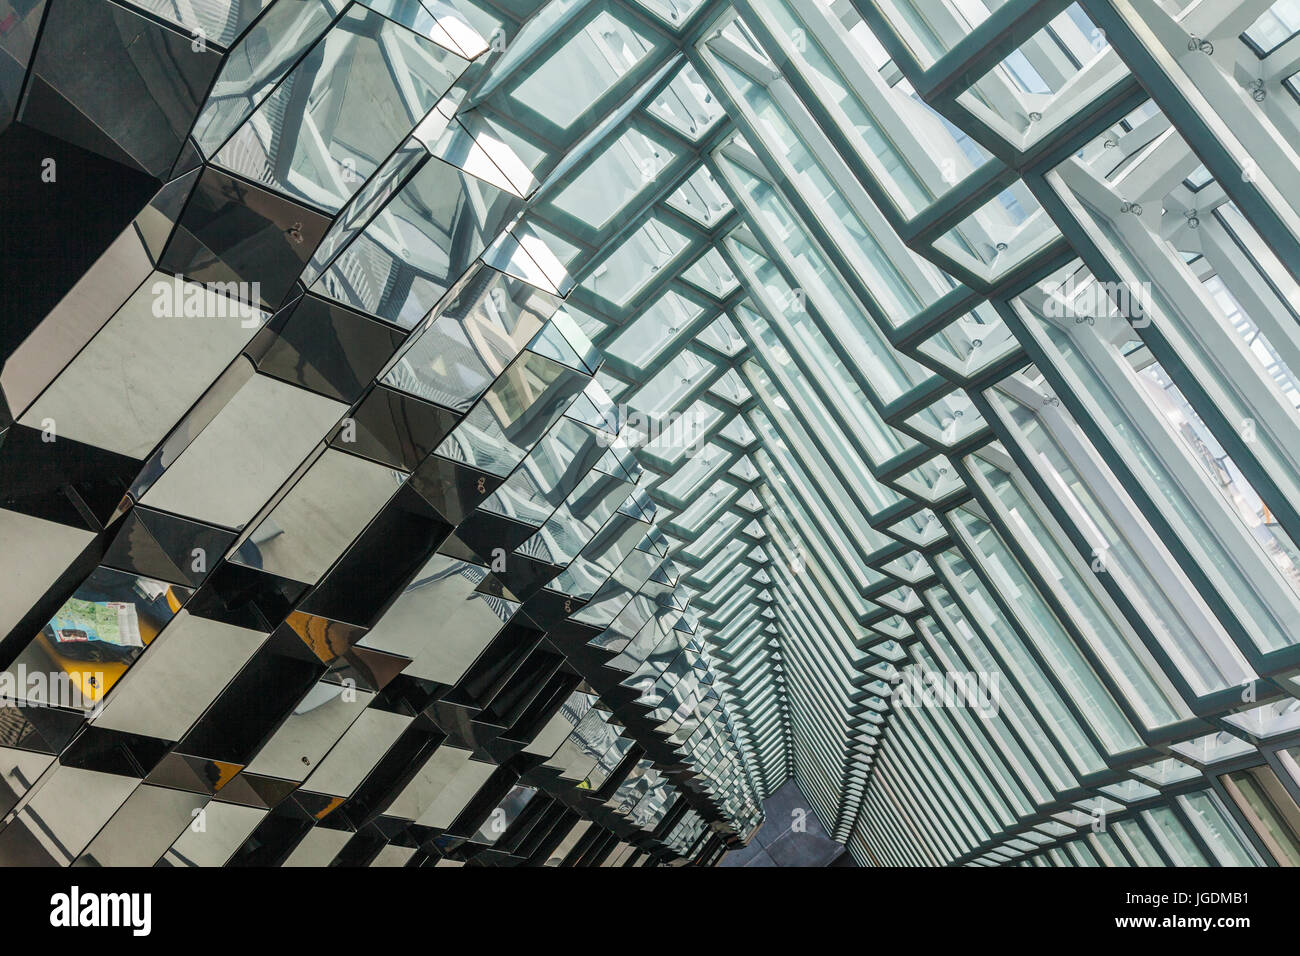 Perspective image of glass wall and ceiling in the Harpa Concert Hall - Stock Image